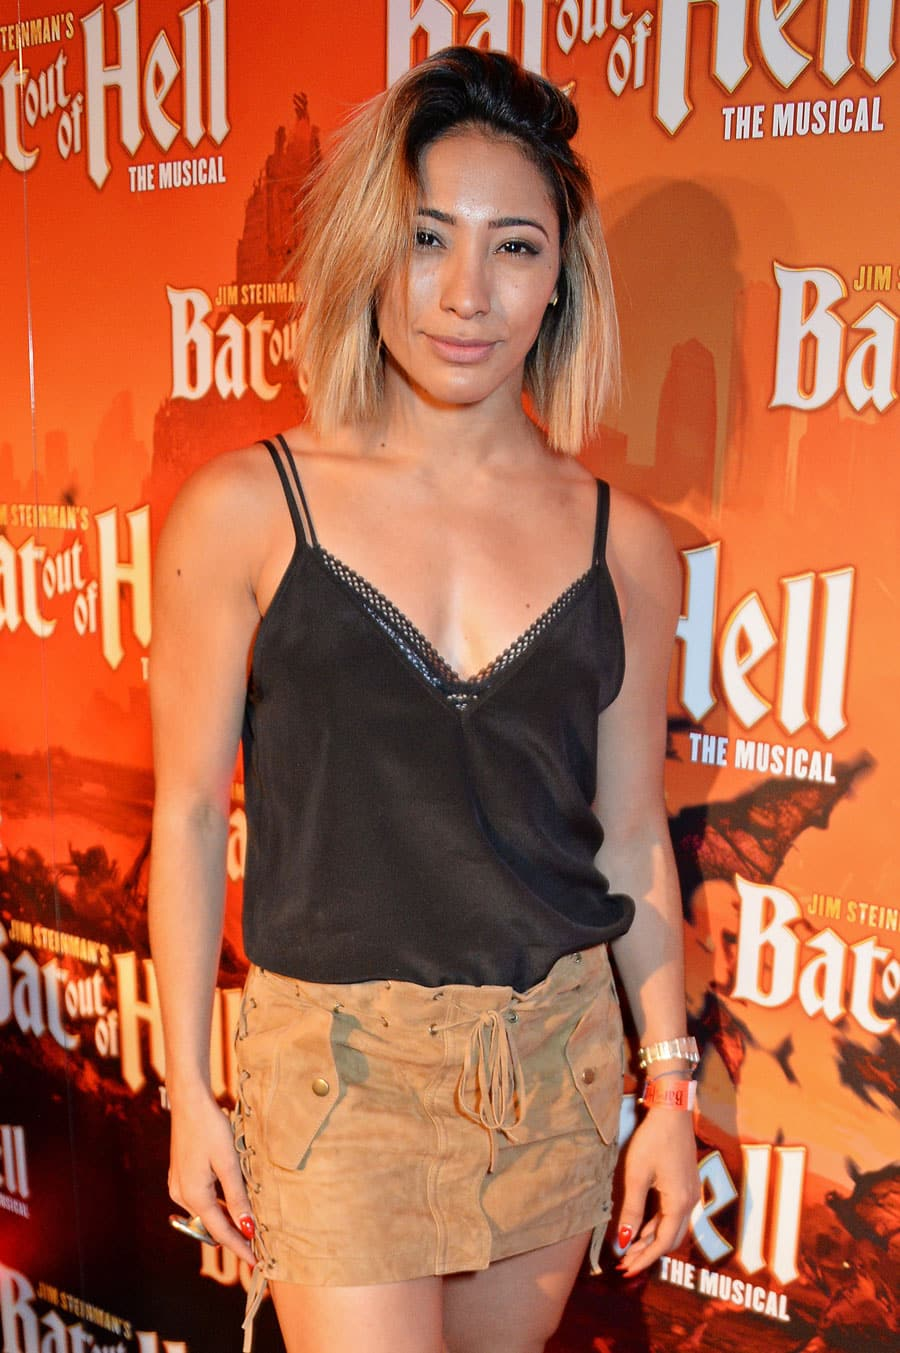 Karen Clifton at Bat Out Of Hell